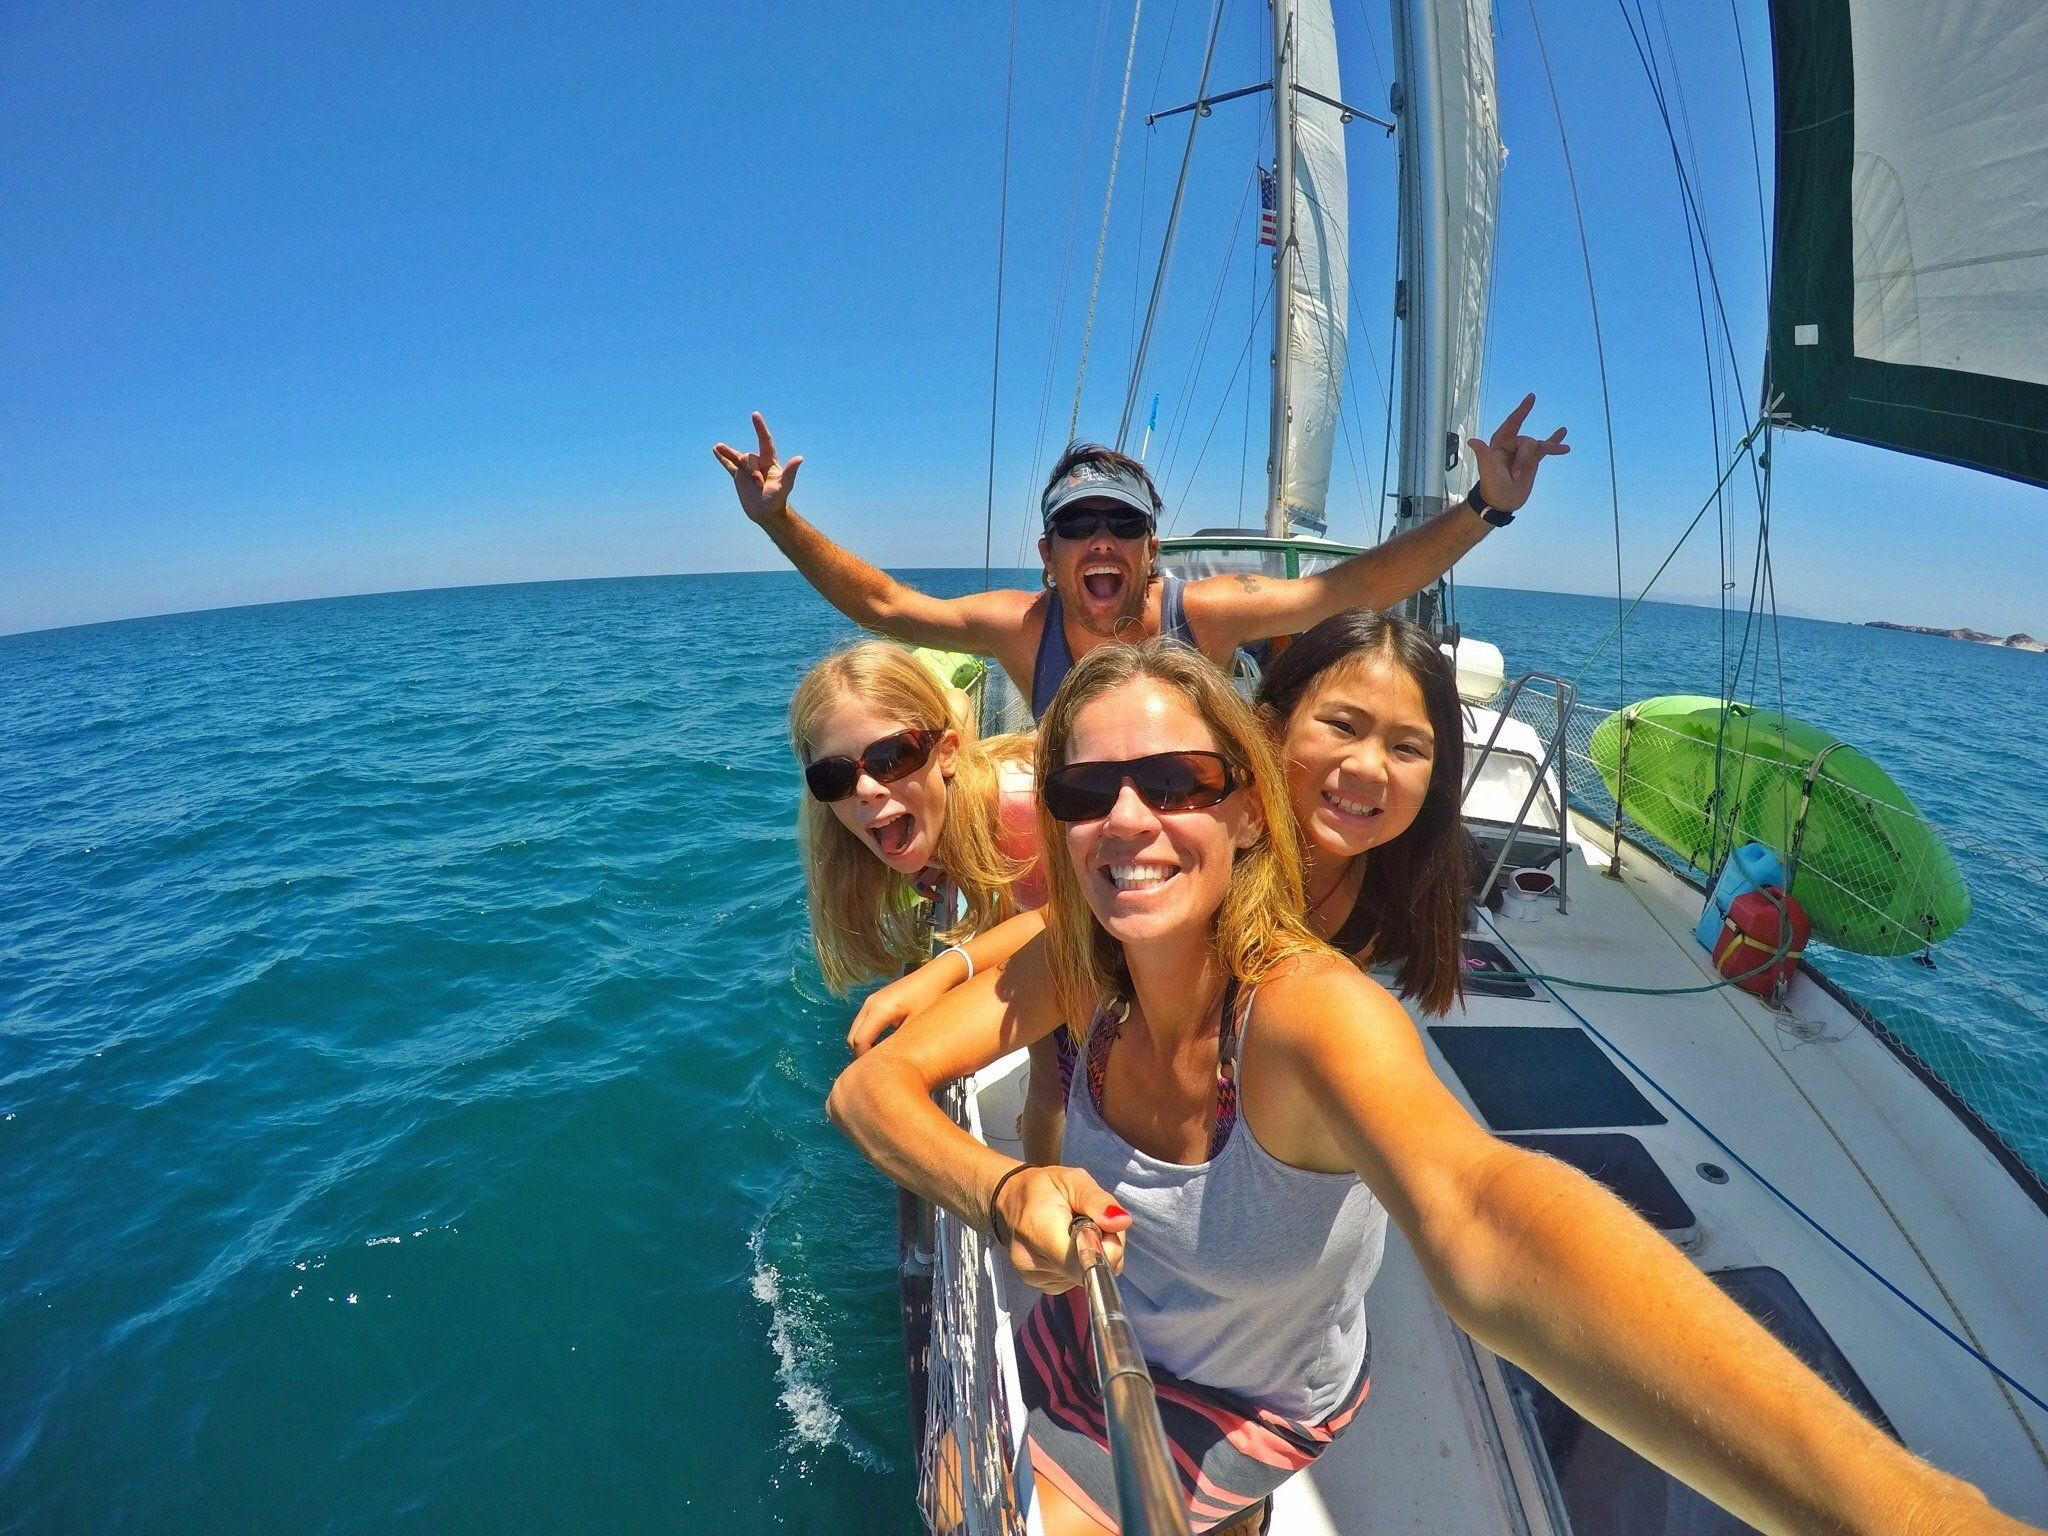 The Nance family is sailing around the world ina 45-foot boat.